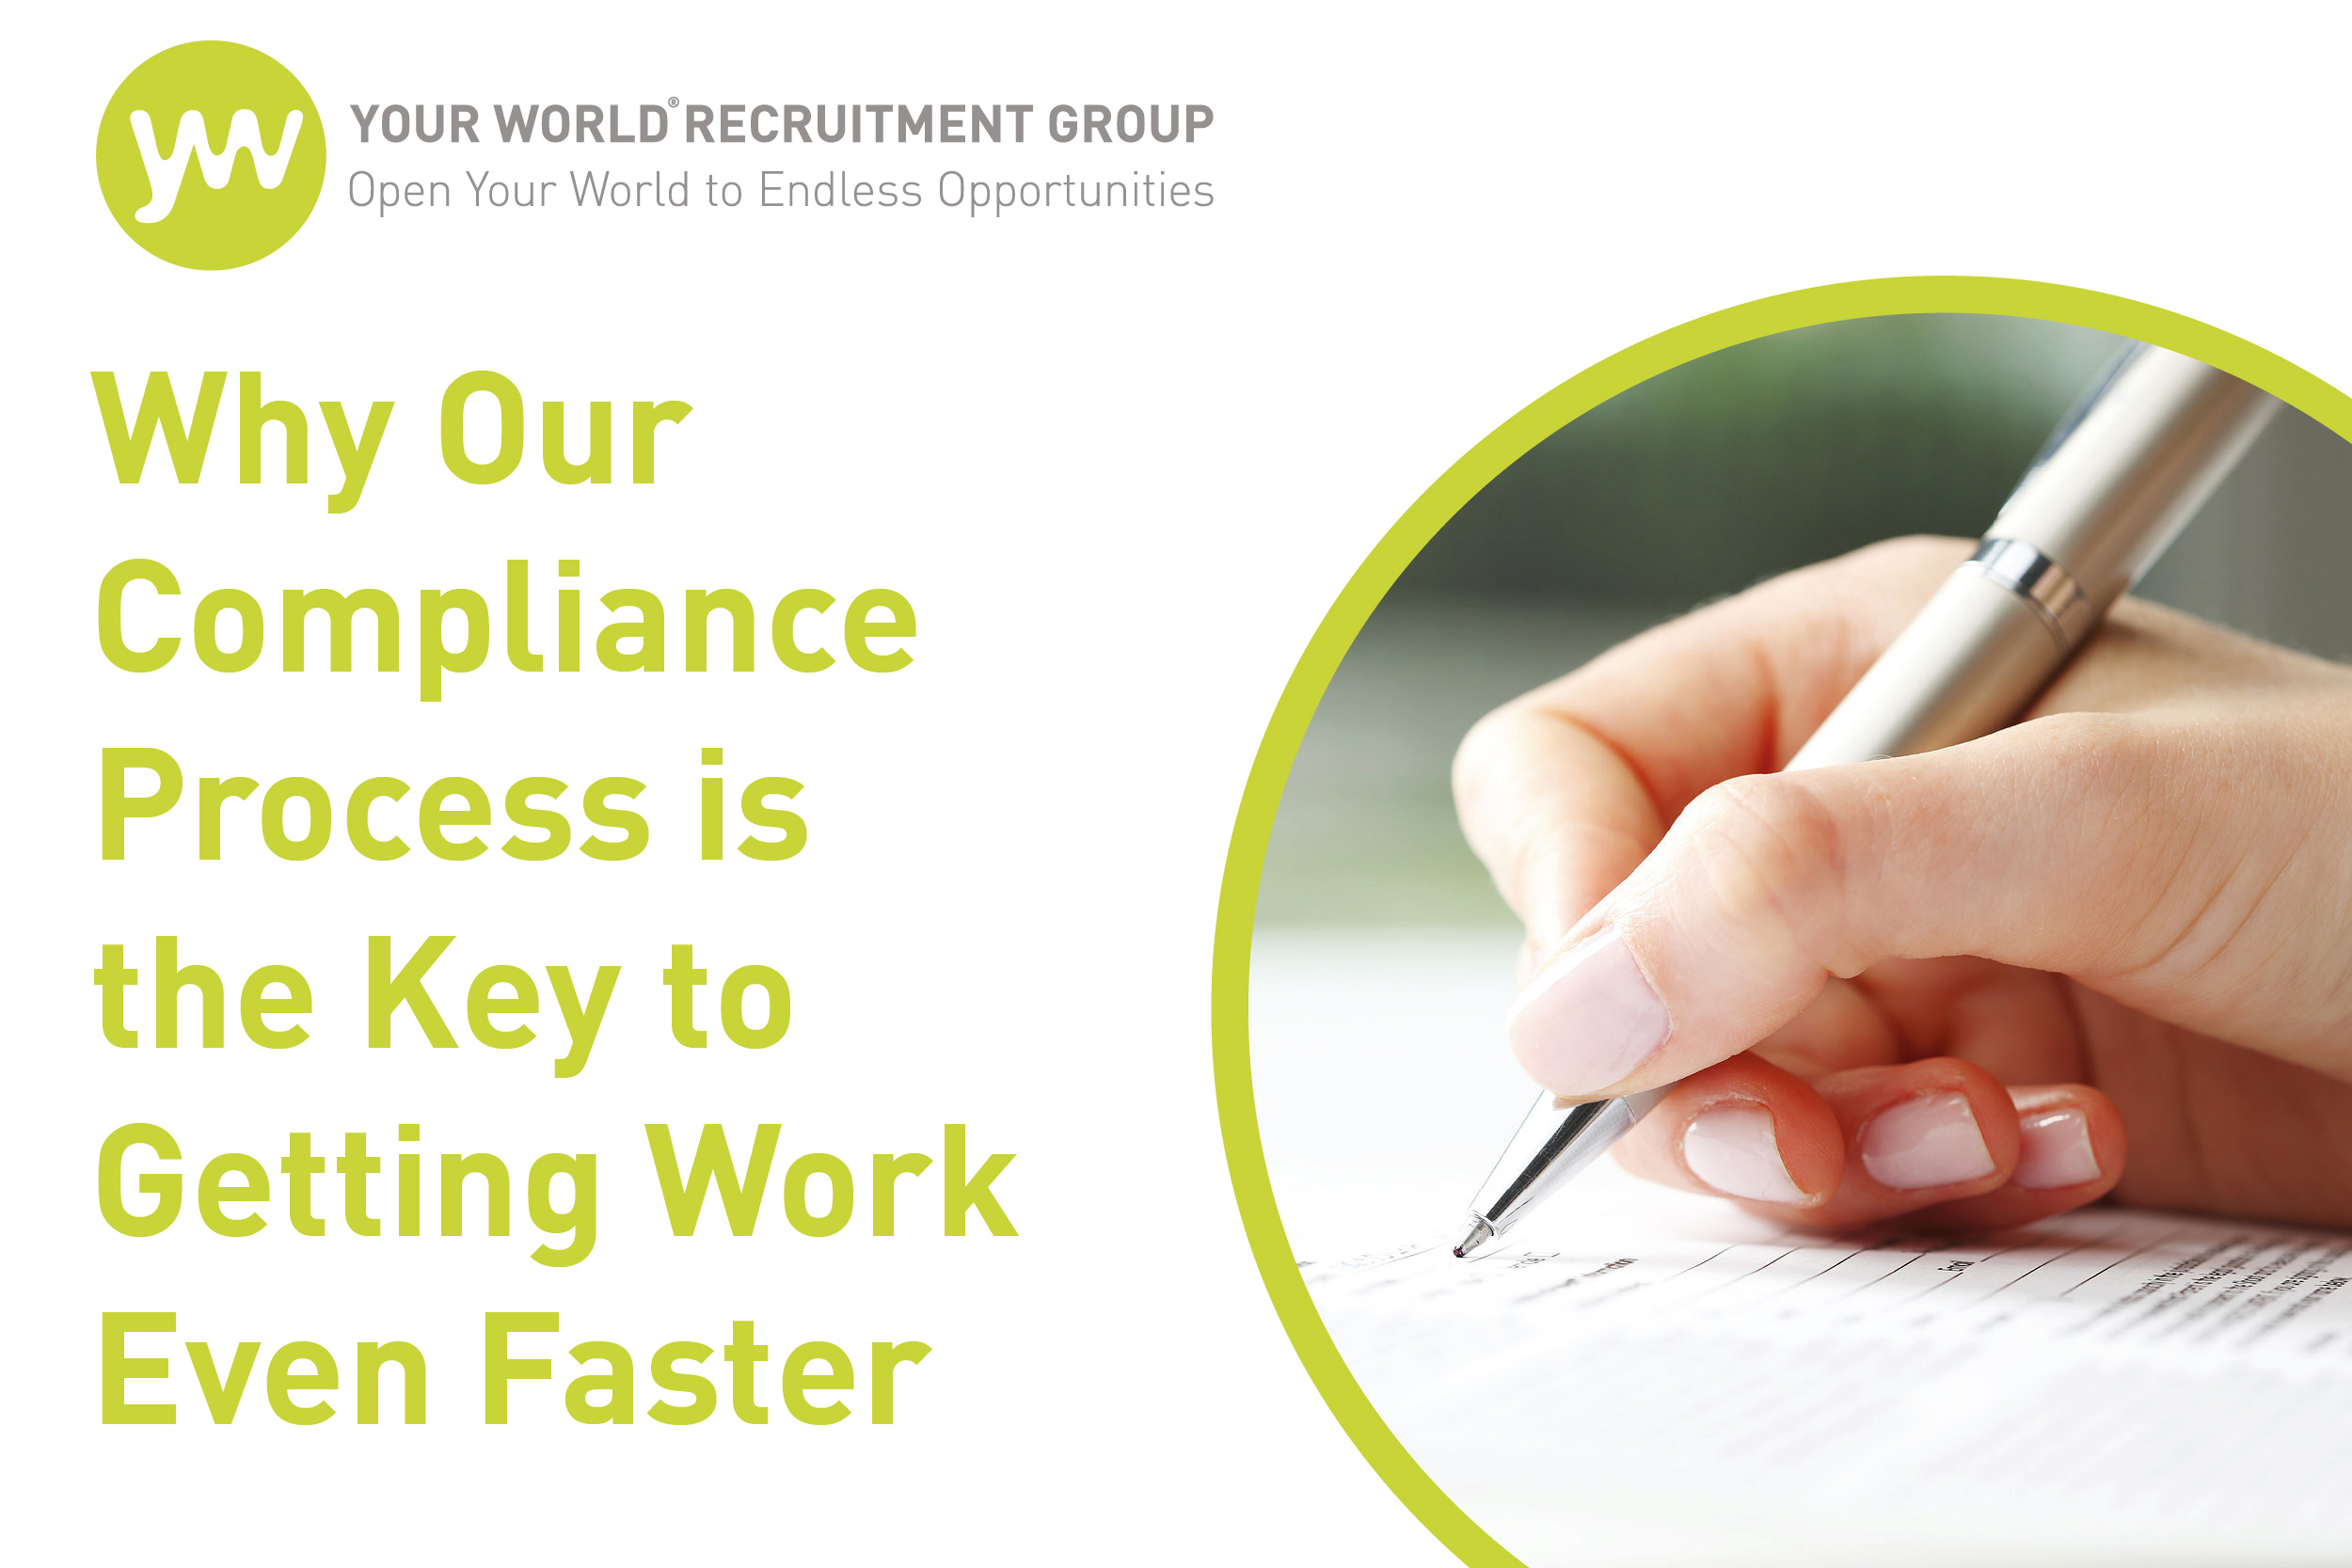 Why Our Compliance Process is the Key to Getting Work Even Faster